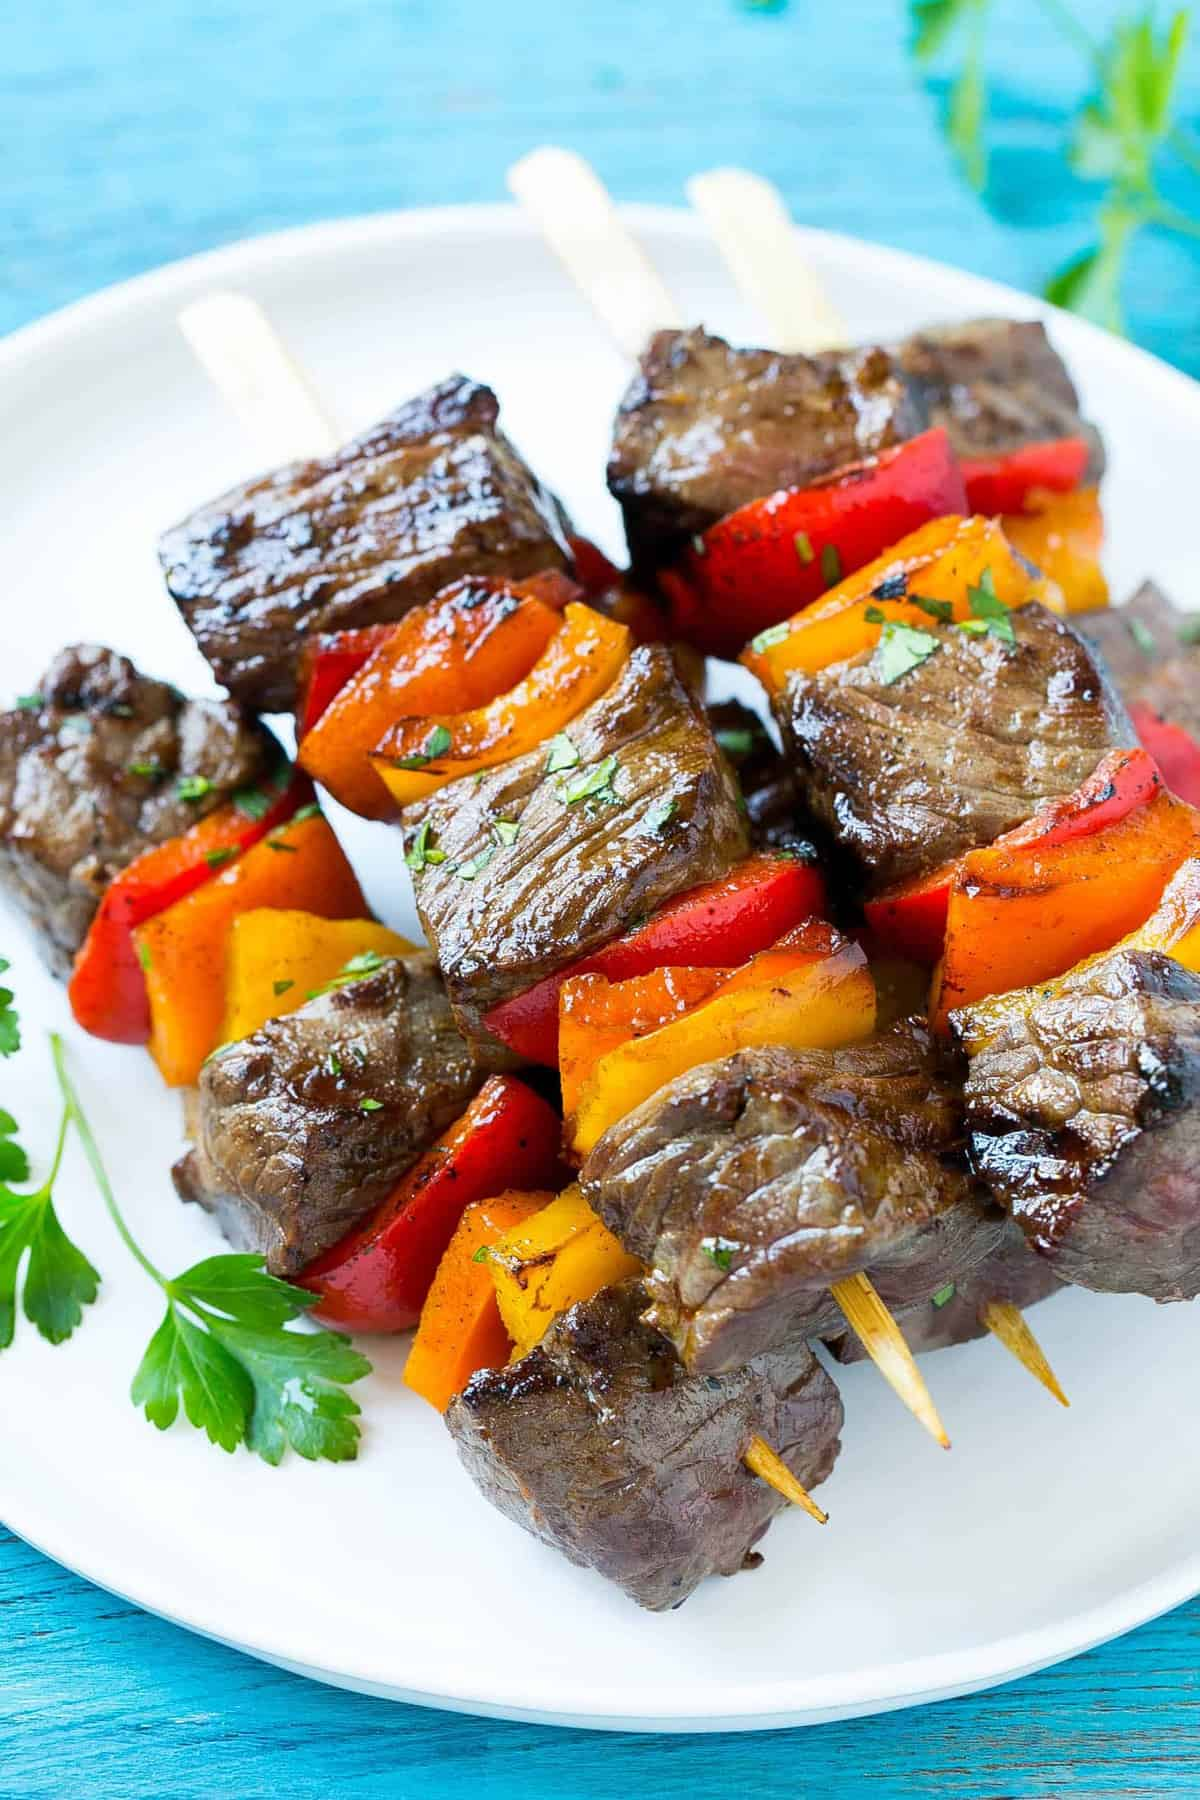 kabobs made with lean steak and peppers